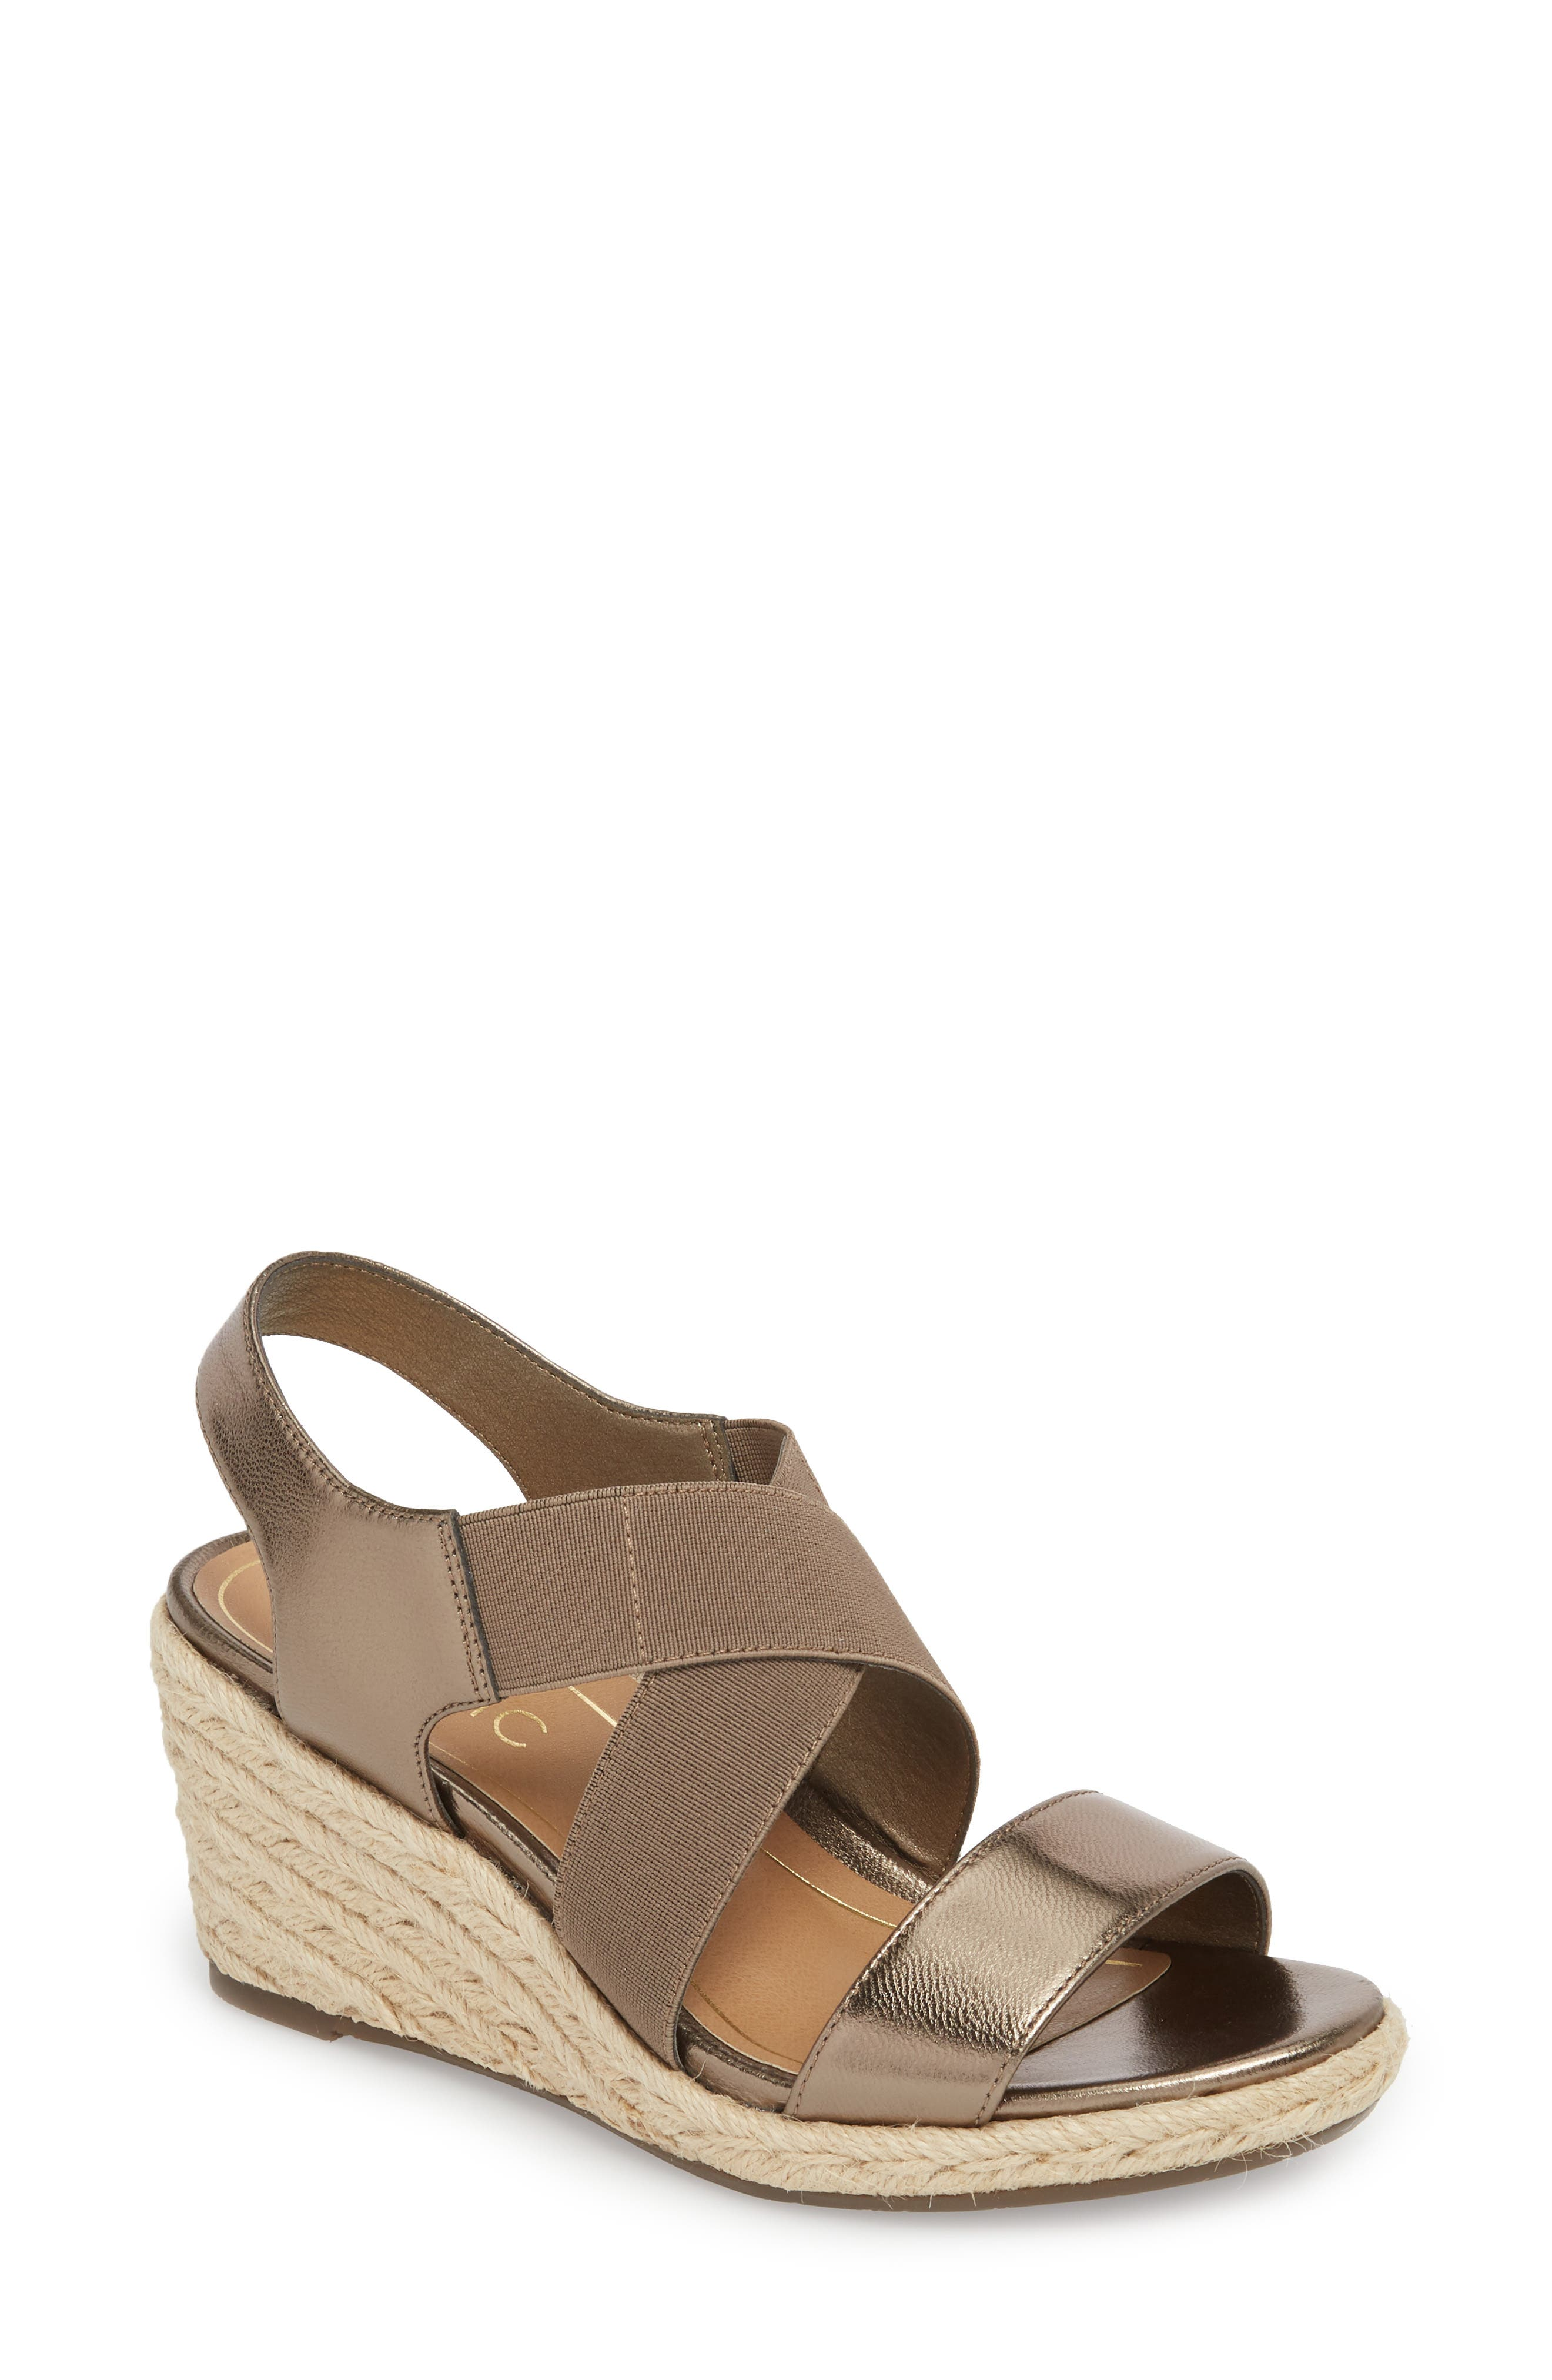 Ainsleigh Wedge Sandal,                         Main,                         color, Dark Taupe Leather